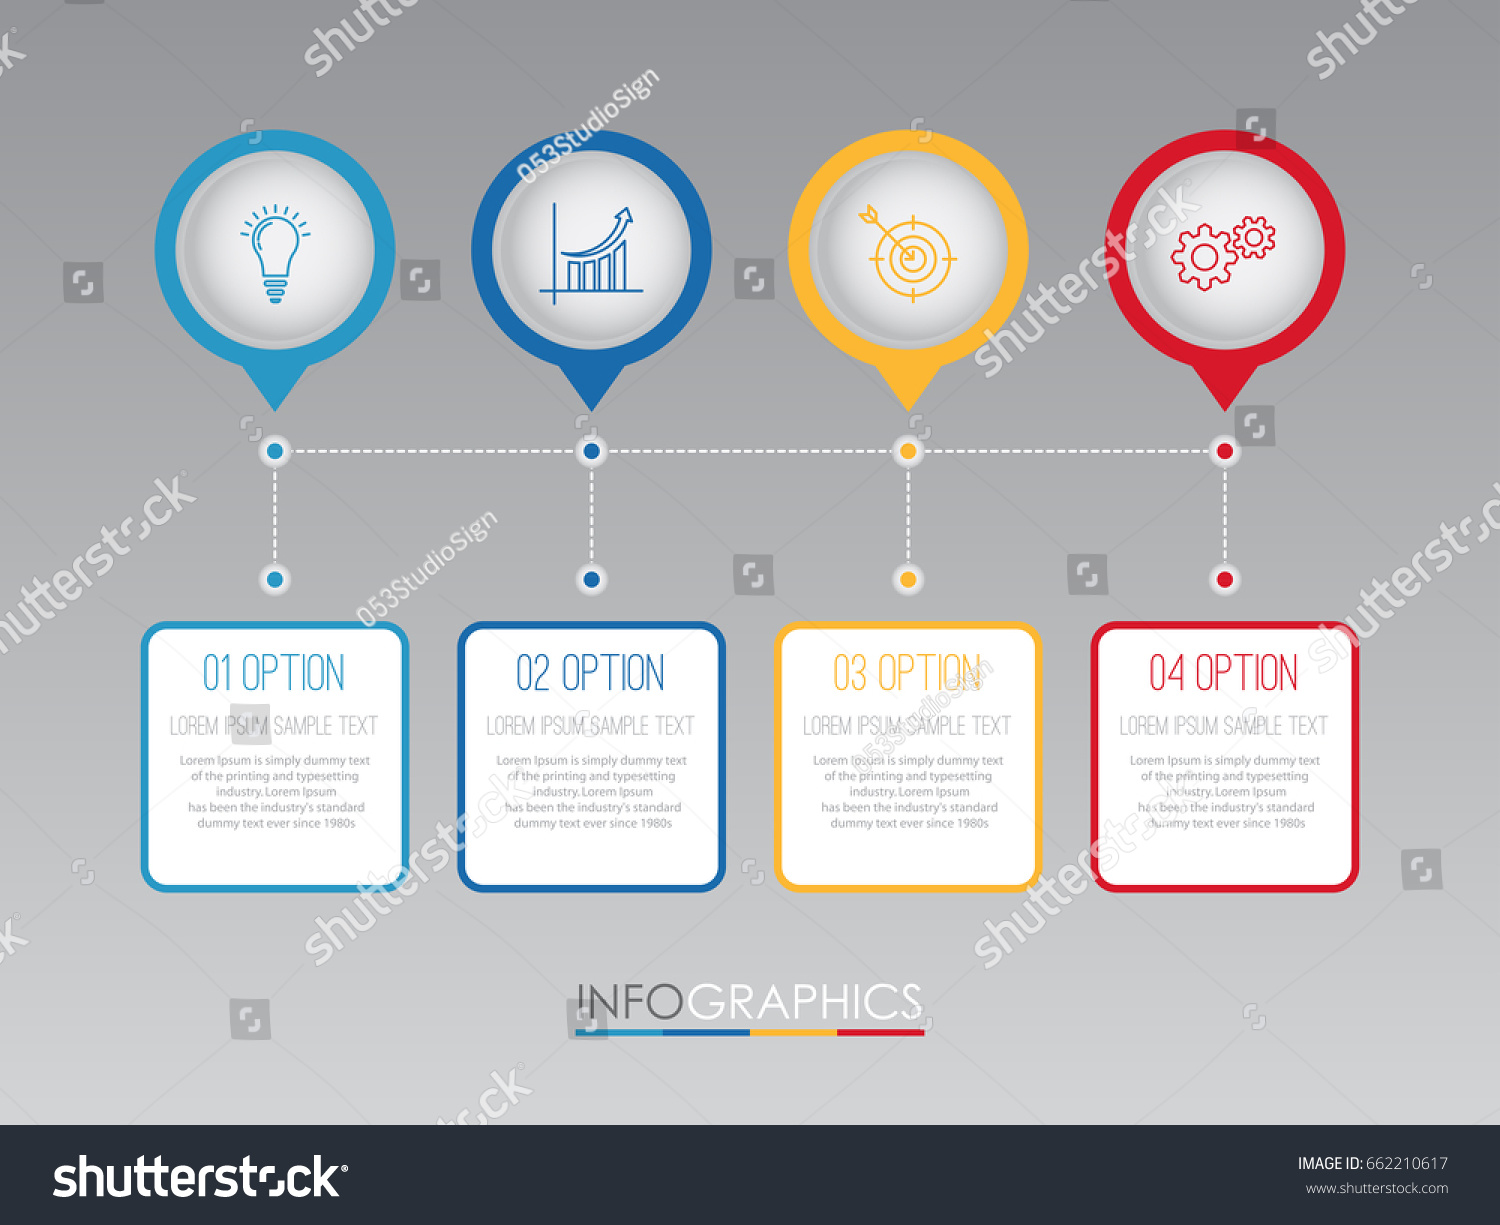 Business Infographic Template Diagram 4 Steps Stock Vector 662210617 ...